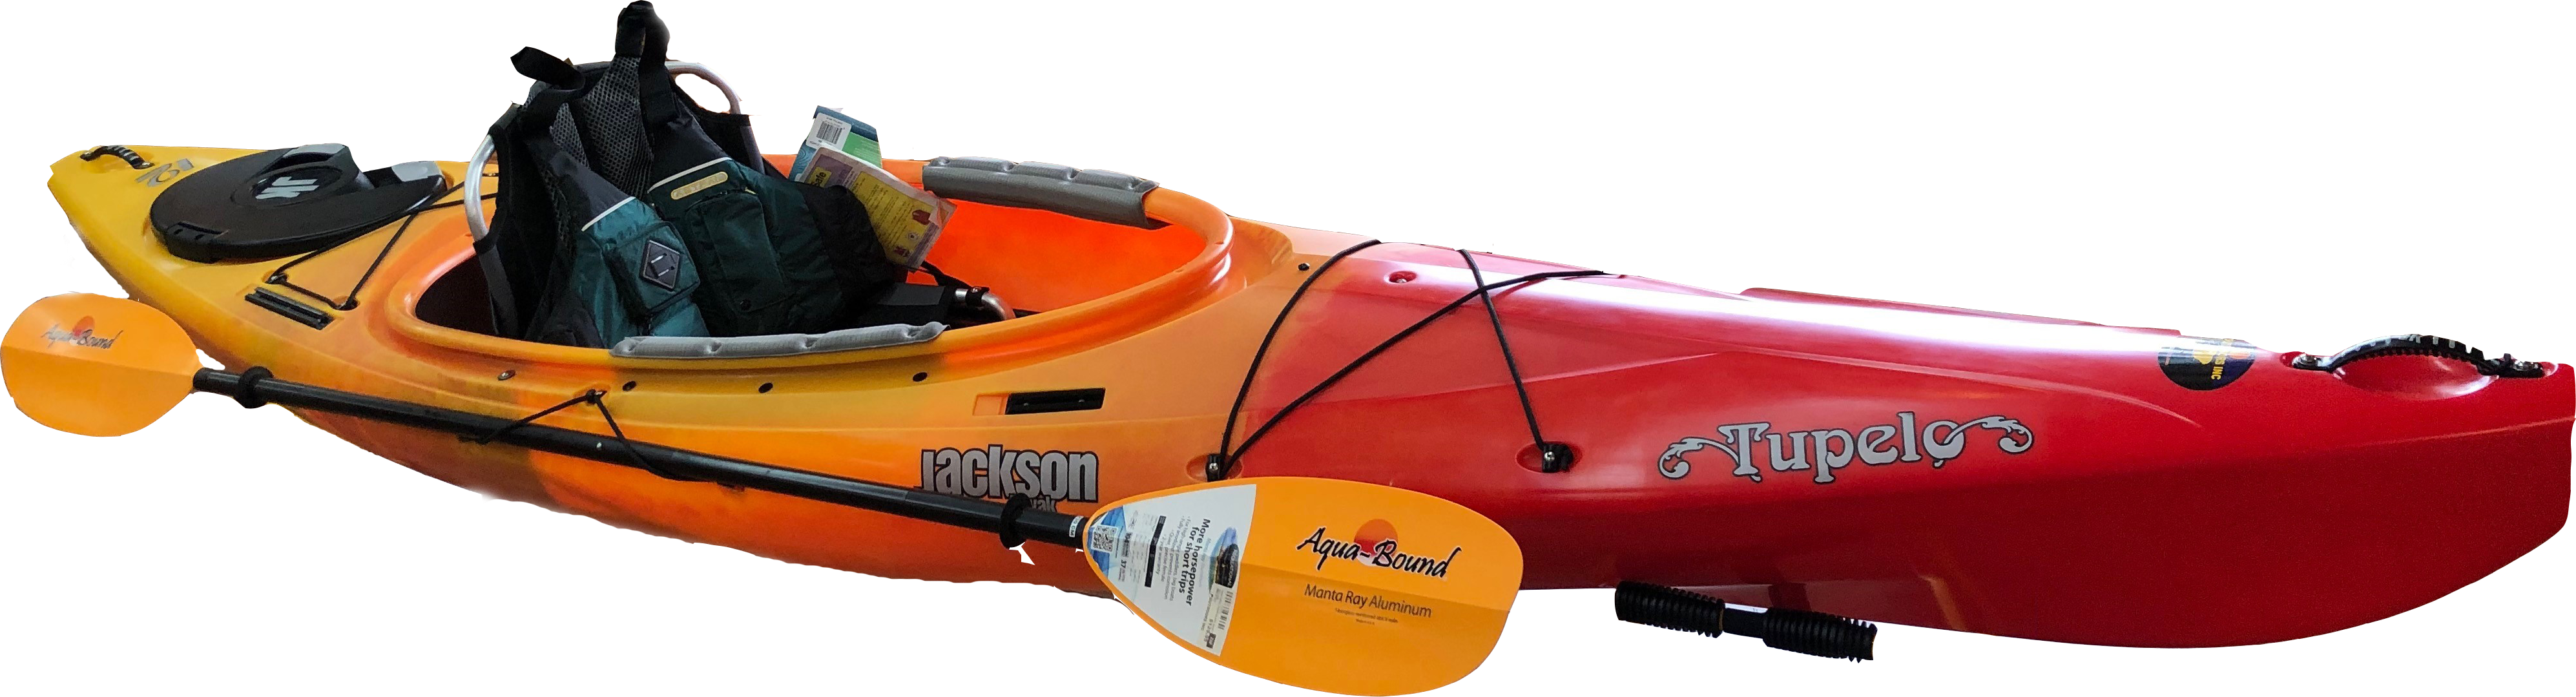 Grand Prize: Outdoors Inc. Kayaking Package (valued at $1000)